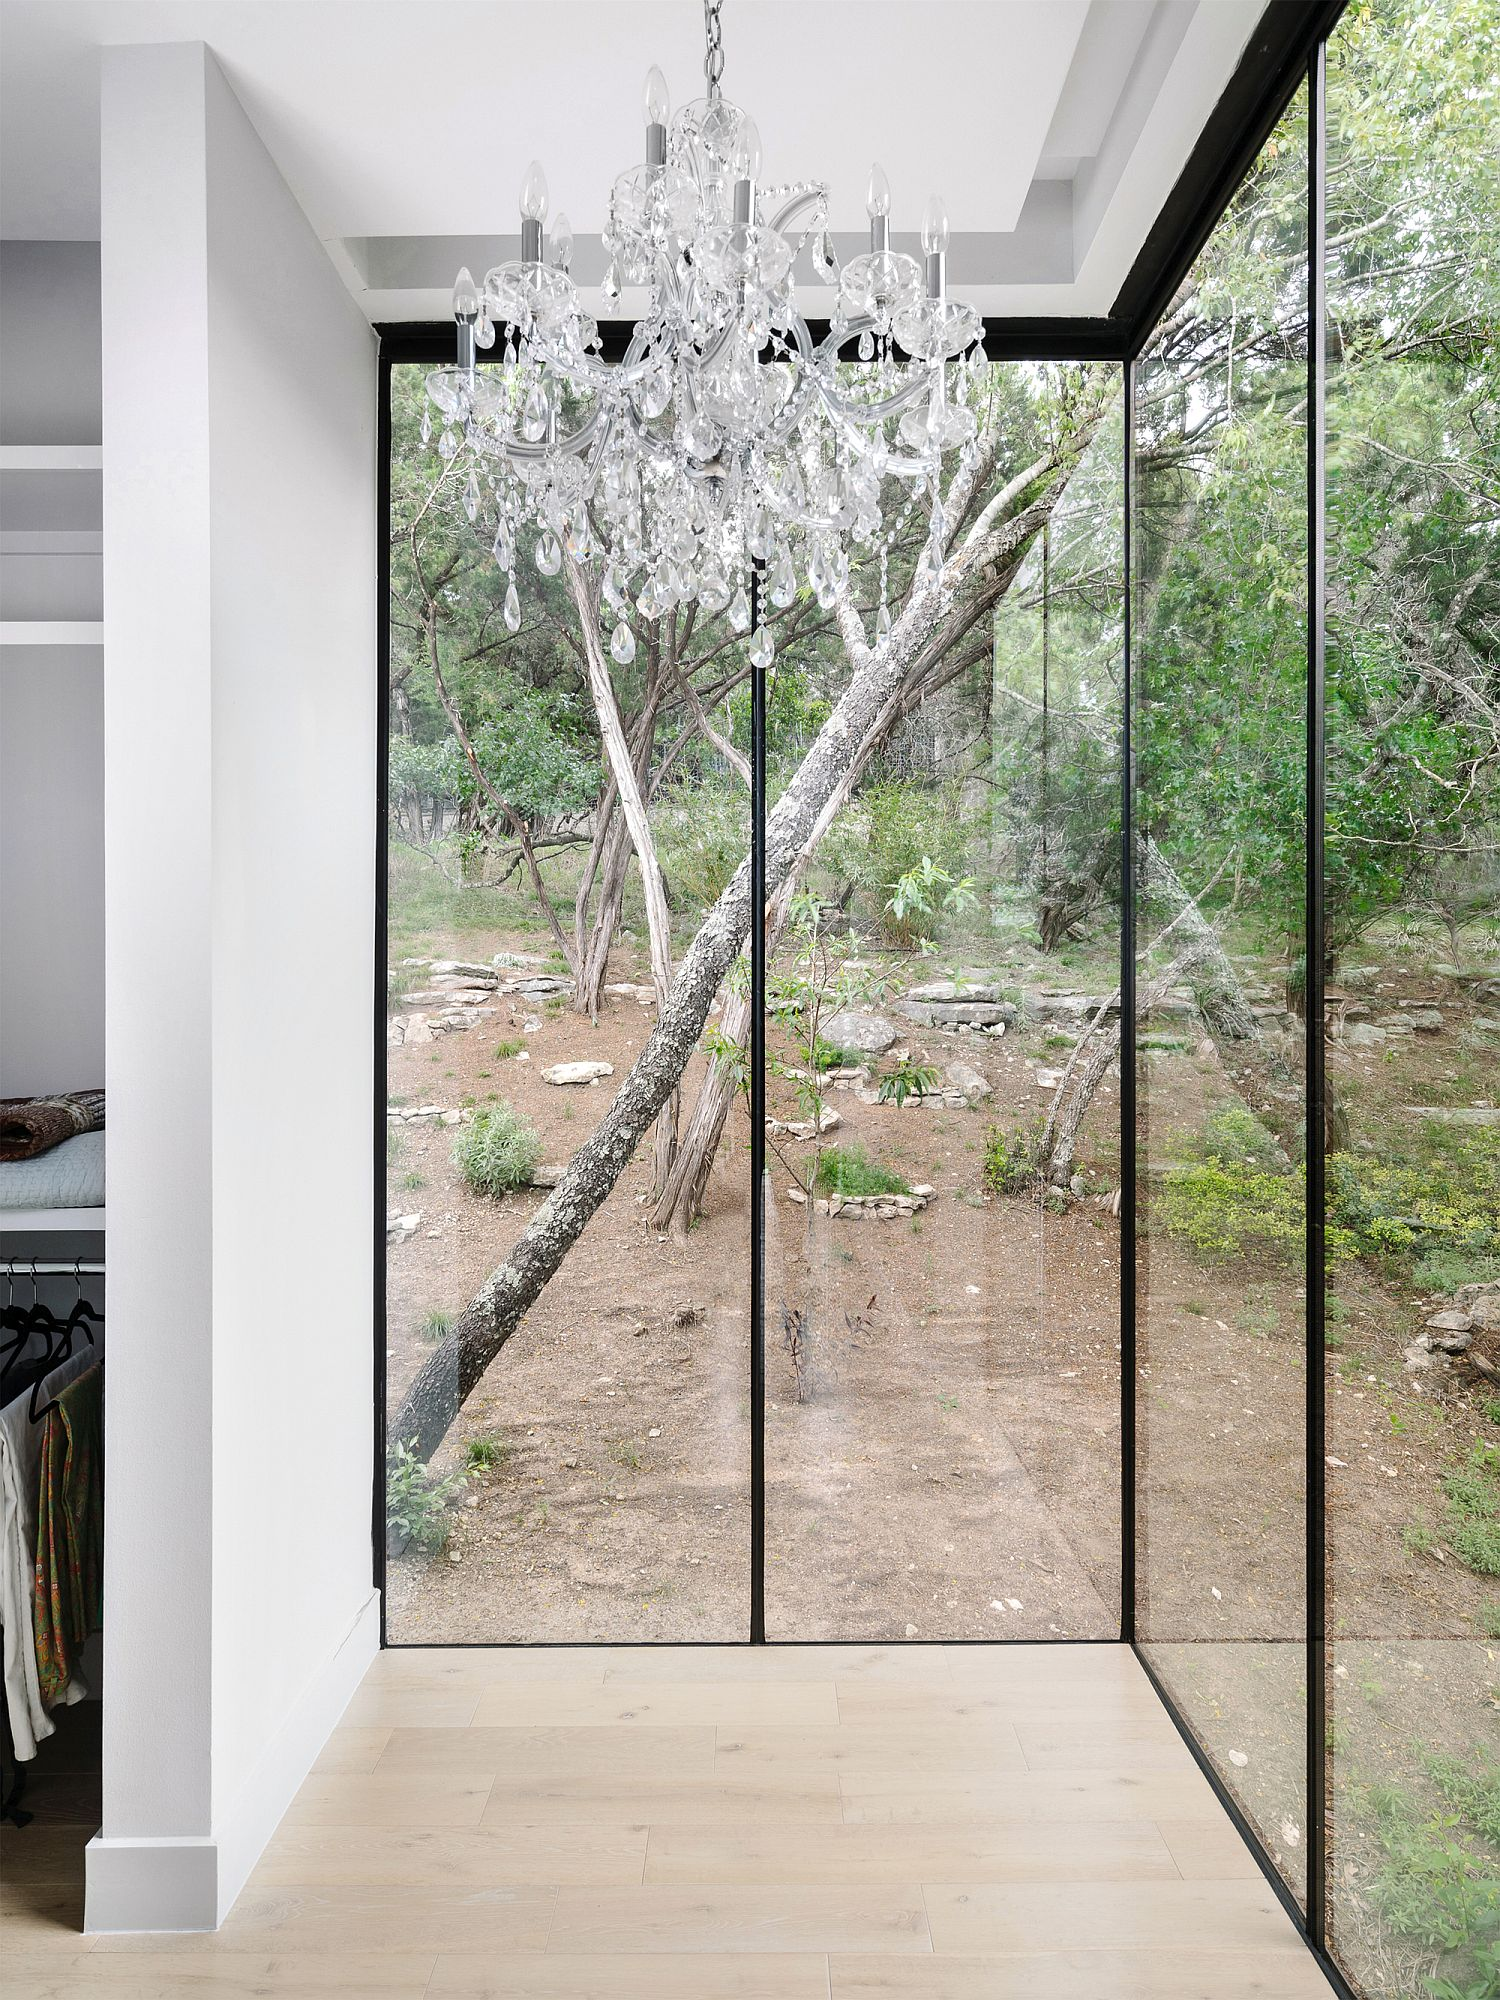 Glass walls connect the interior with the landscape